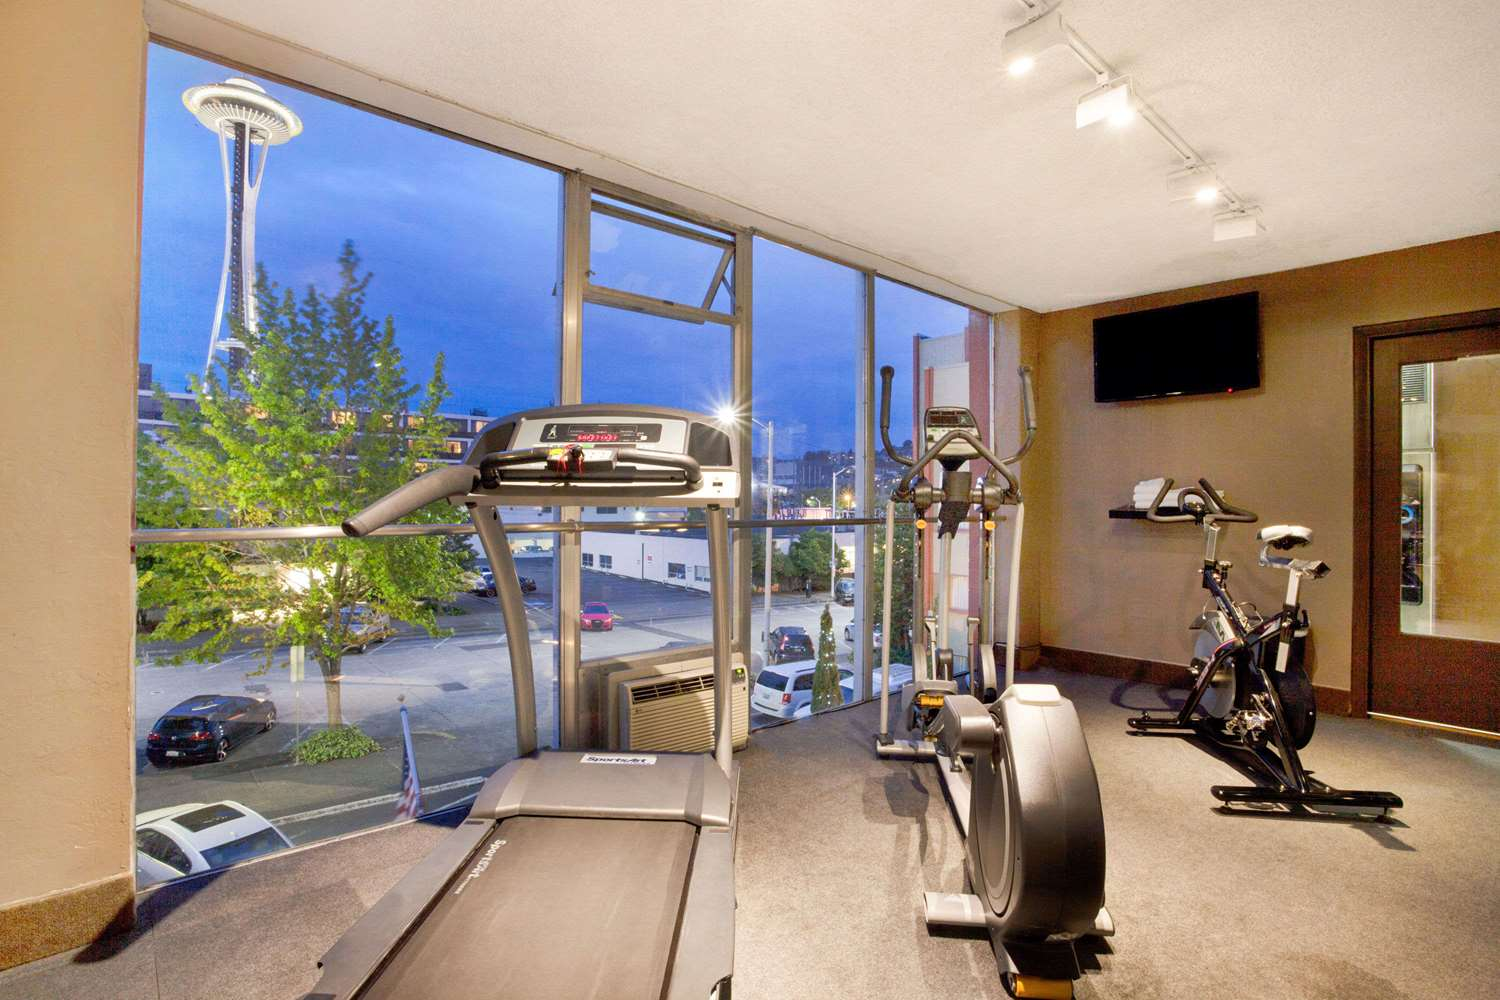 Fitness/ Exercise Room - Travelodge Space Needle Seattle